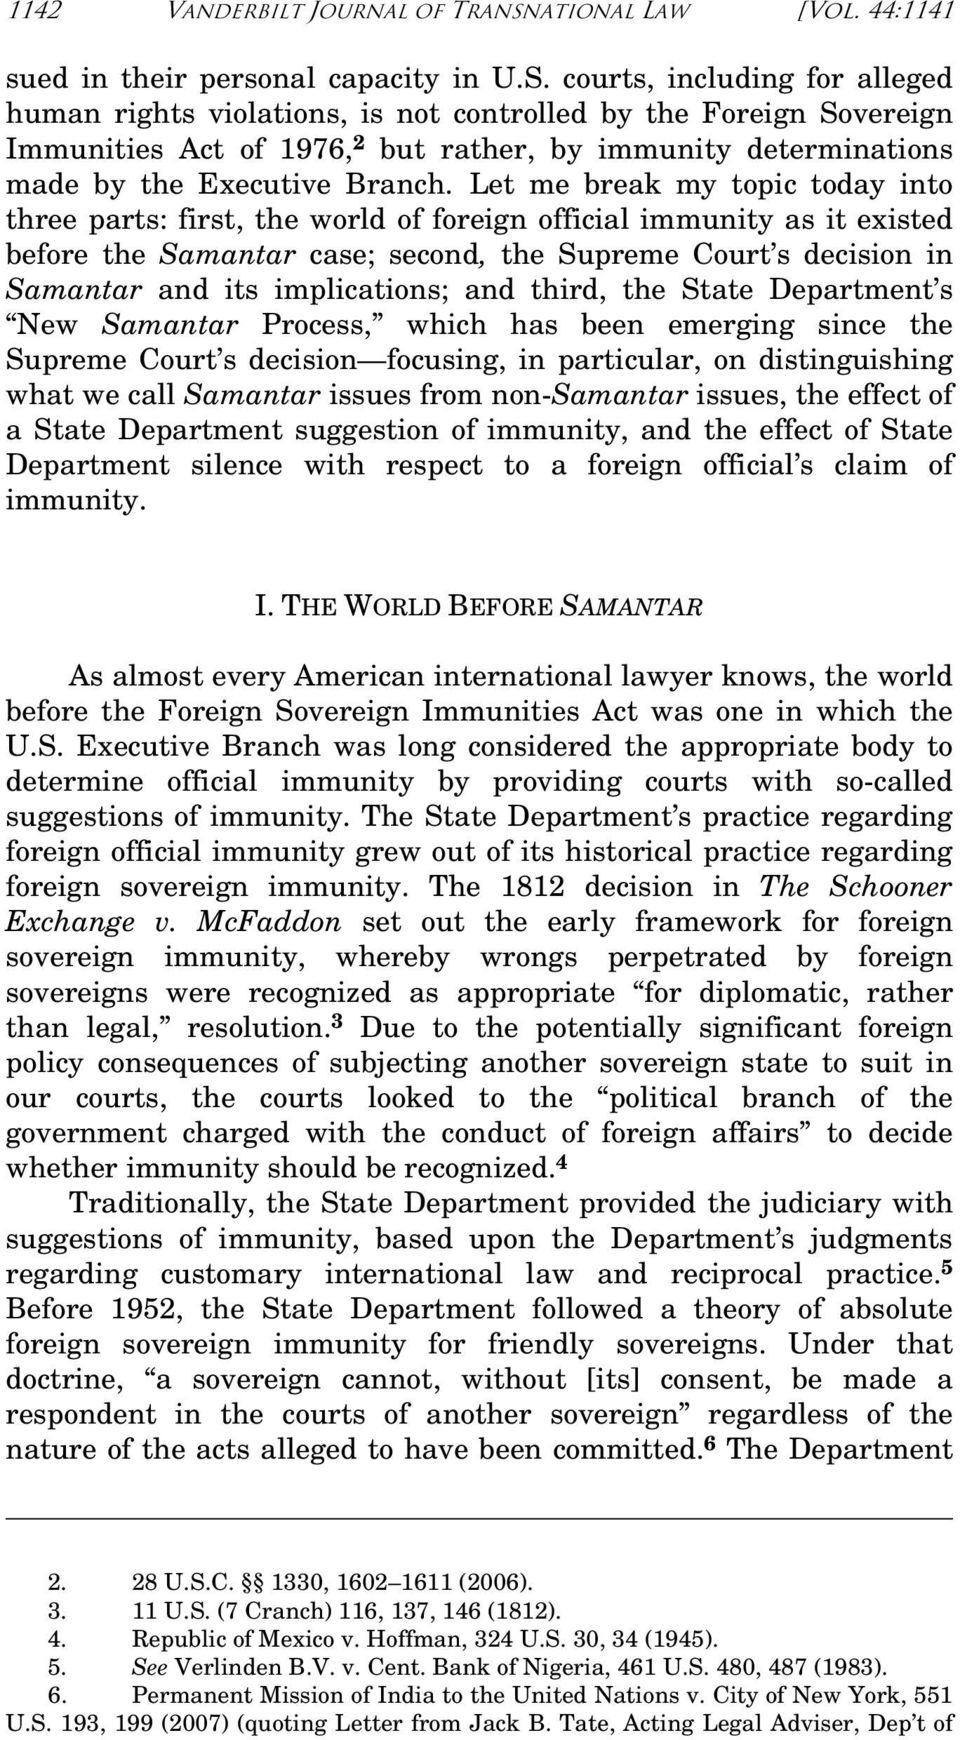 courts, including for alleged human rights violations, is not controlled by the Foreign Sovereign Immunities Act of 1976, 2 but rather, by immunity determinations made by the Executive Branch.